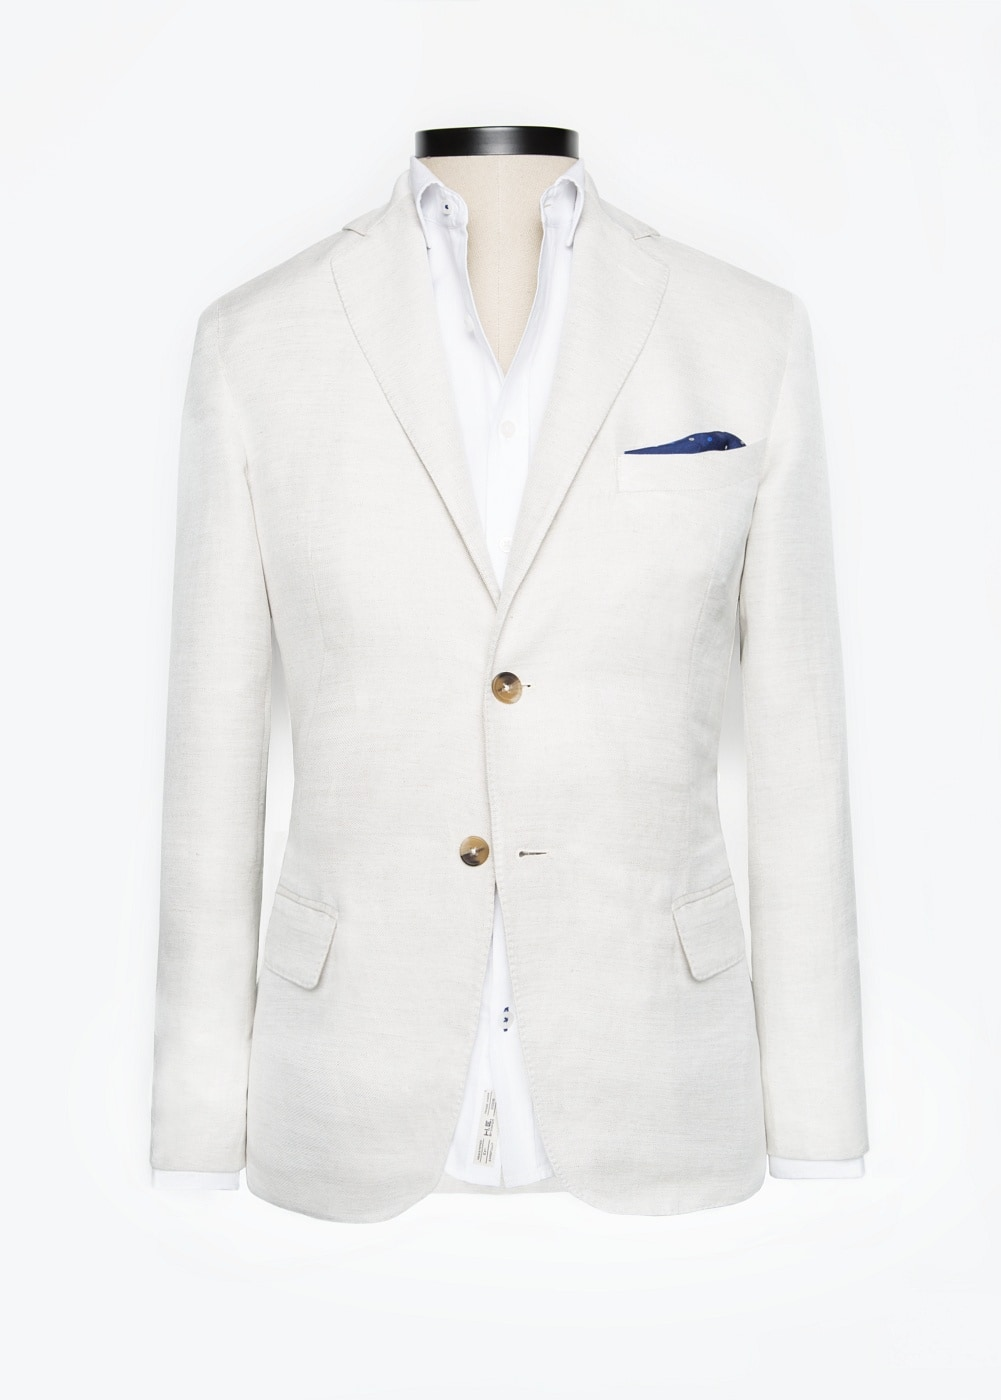 Bird's eye unstructured blazer